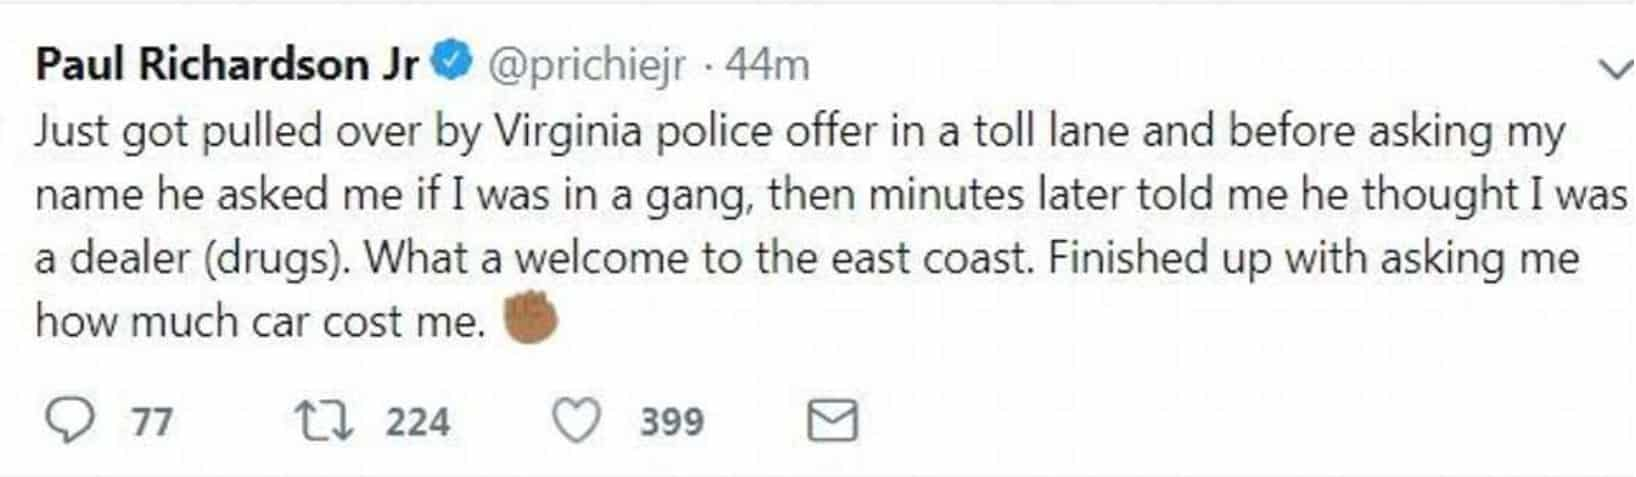 Paul-Richardson-redskins-deleted tweet-about-getting-pulled-over